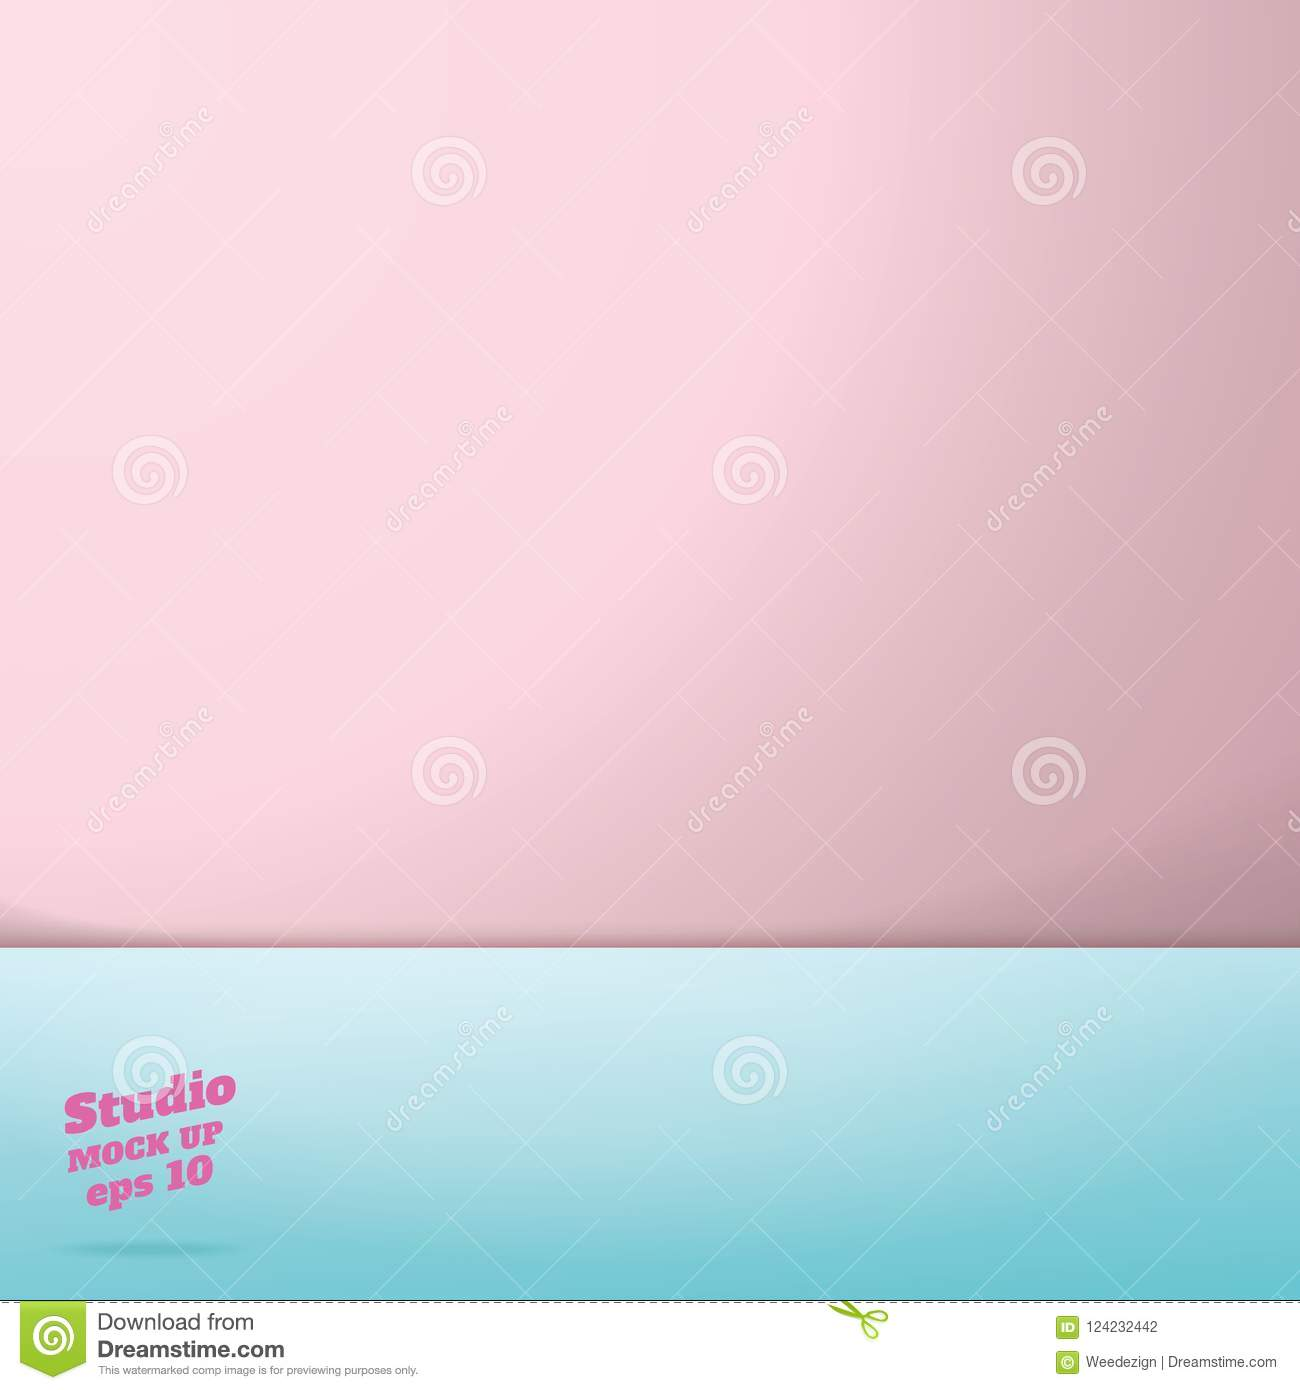 PrintVector of Empty pastel pink and blue two tone color studio